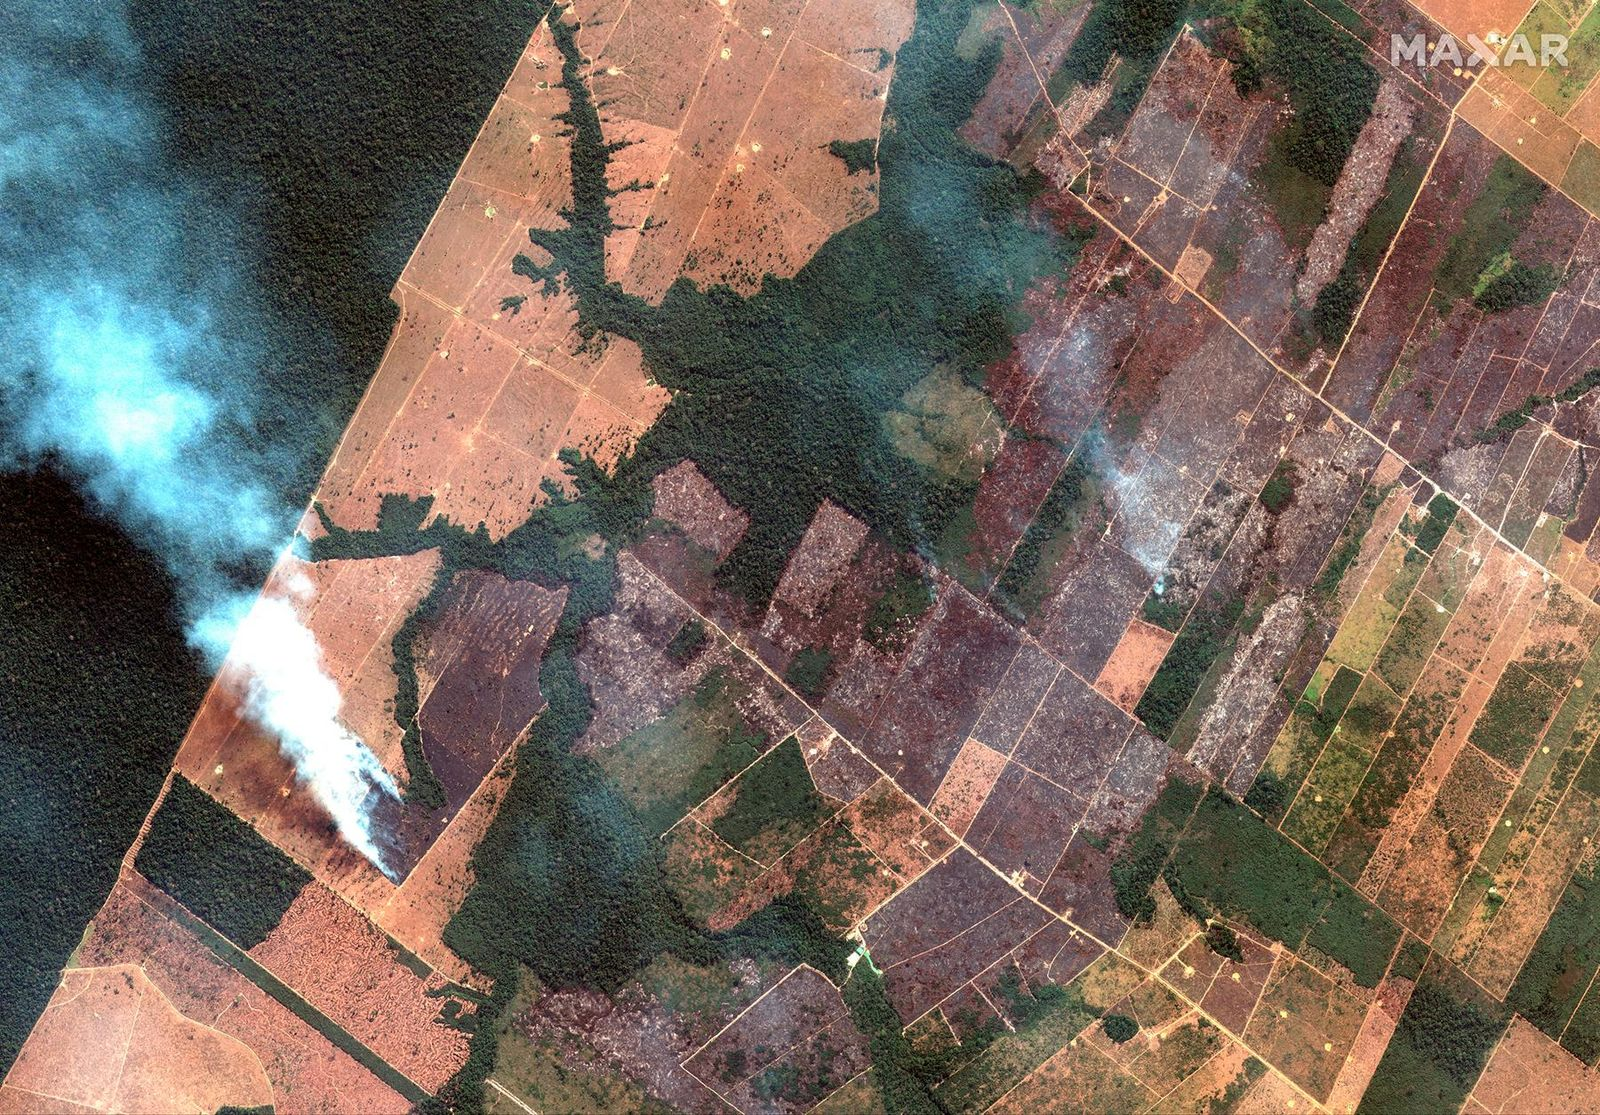 This Aug. 15, 2019 satellite image from Maxar Technologies shows a fire and cleared land southwest of Porto Velho Brazil. Brazil's National Institute for Space Research, a federal agency monitoring deforestation and wildfires, said the country has seen a record number of wildfires this year as of Tuesday, Aug. 20.   (Satellite image ©2019 Maxar Technologies via AP)